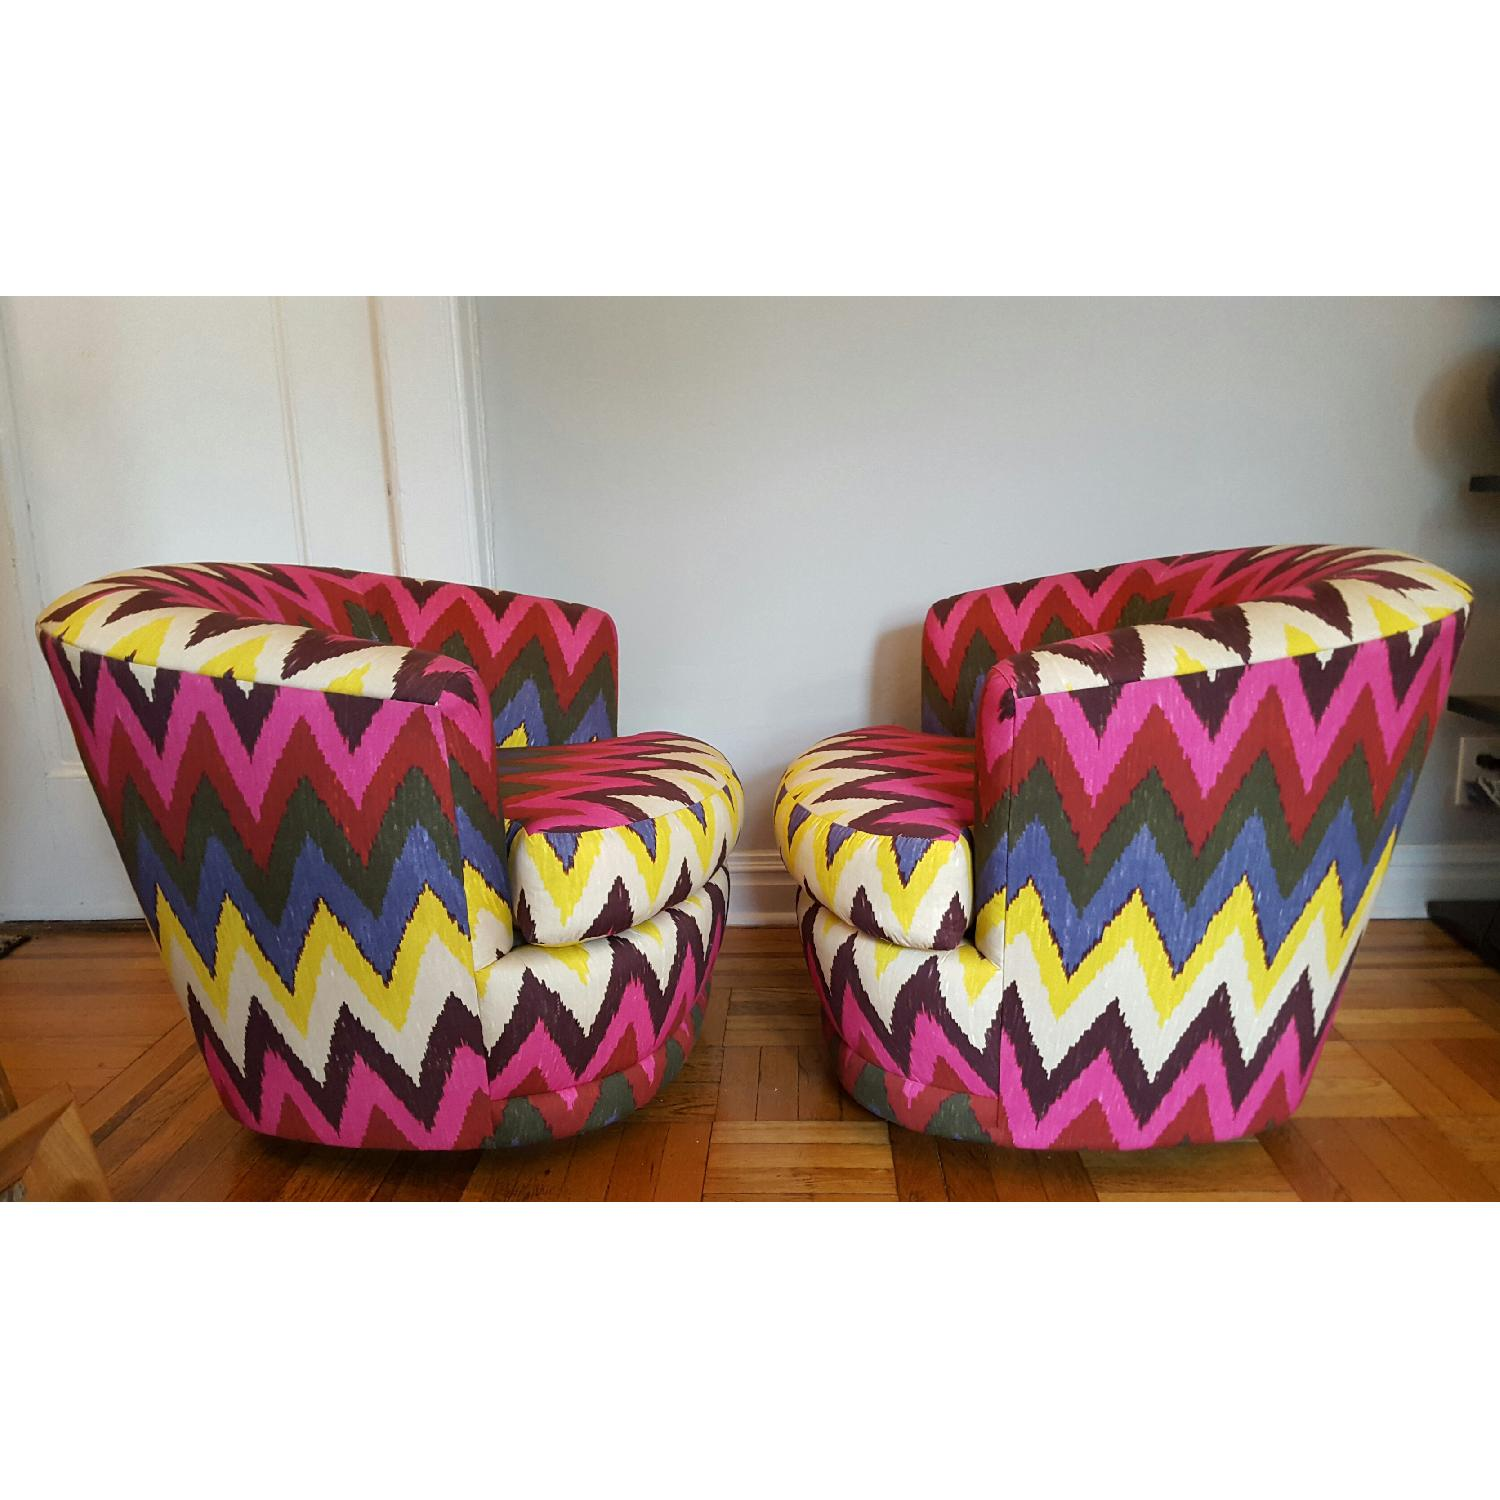 Vintage Reupholstered Ikat Swivel Chairs - image-2